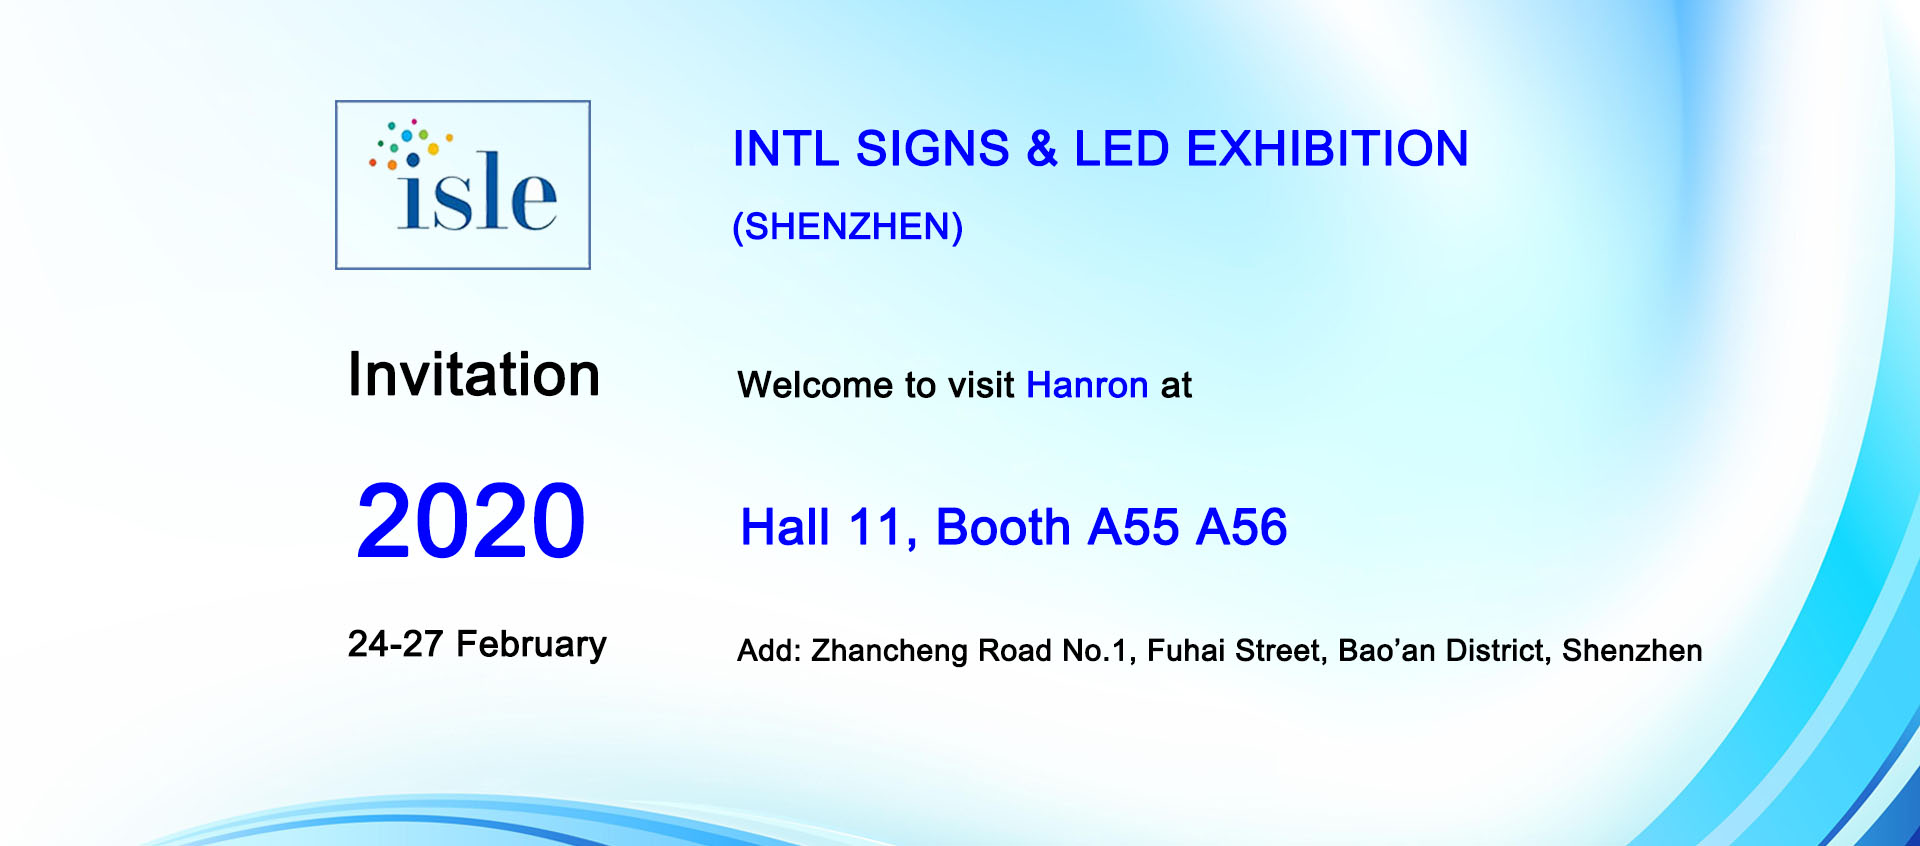 2020 International signs & led exhibition